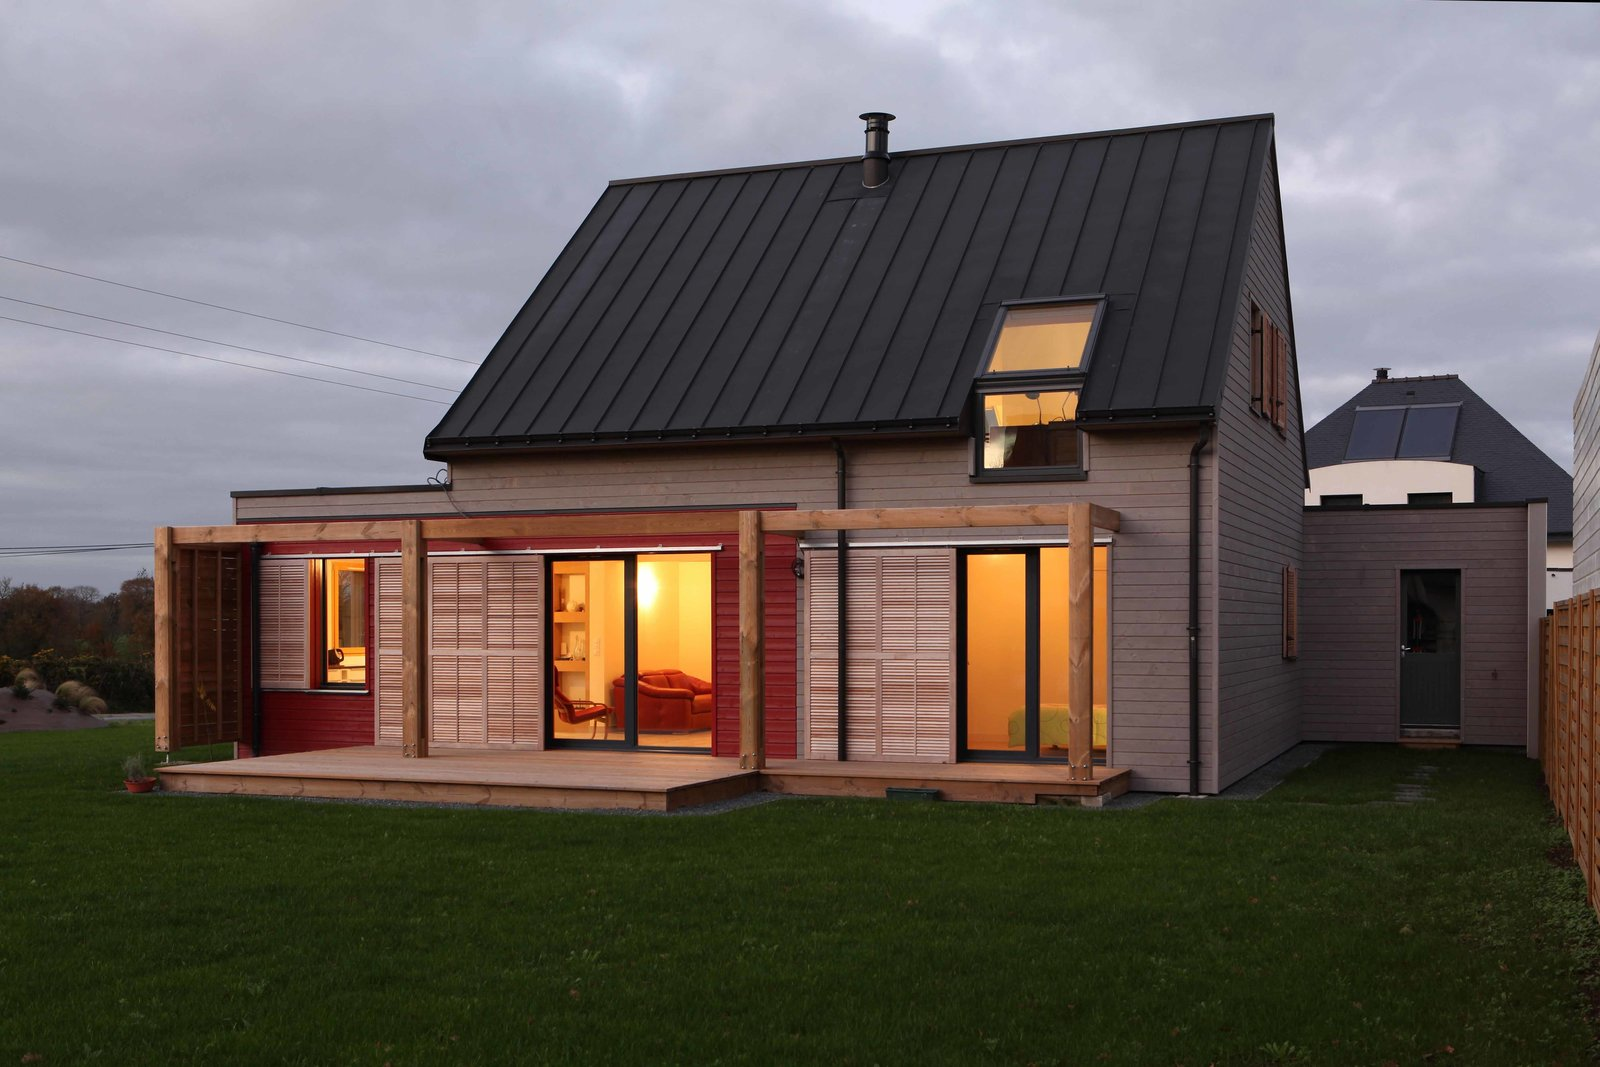 The roofs of each of the three sections of the home are constructed of zinc and are insulated for added protection. Tagged: Outdoor, Grass, Wood Patio, Porch, Deck, Back Yard, and Small Patio, Porch, Deck.  Roofs by Aileen Kwun from A Cozy, Well-Sealed Cottage in Northwest France Goes Green